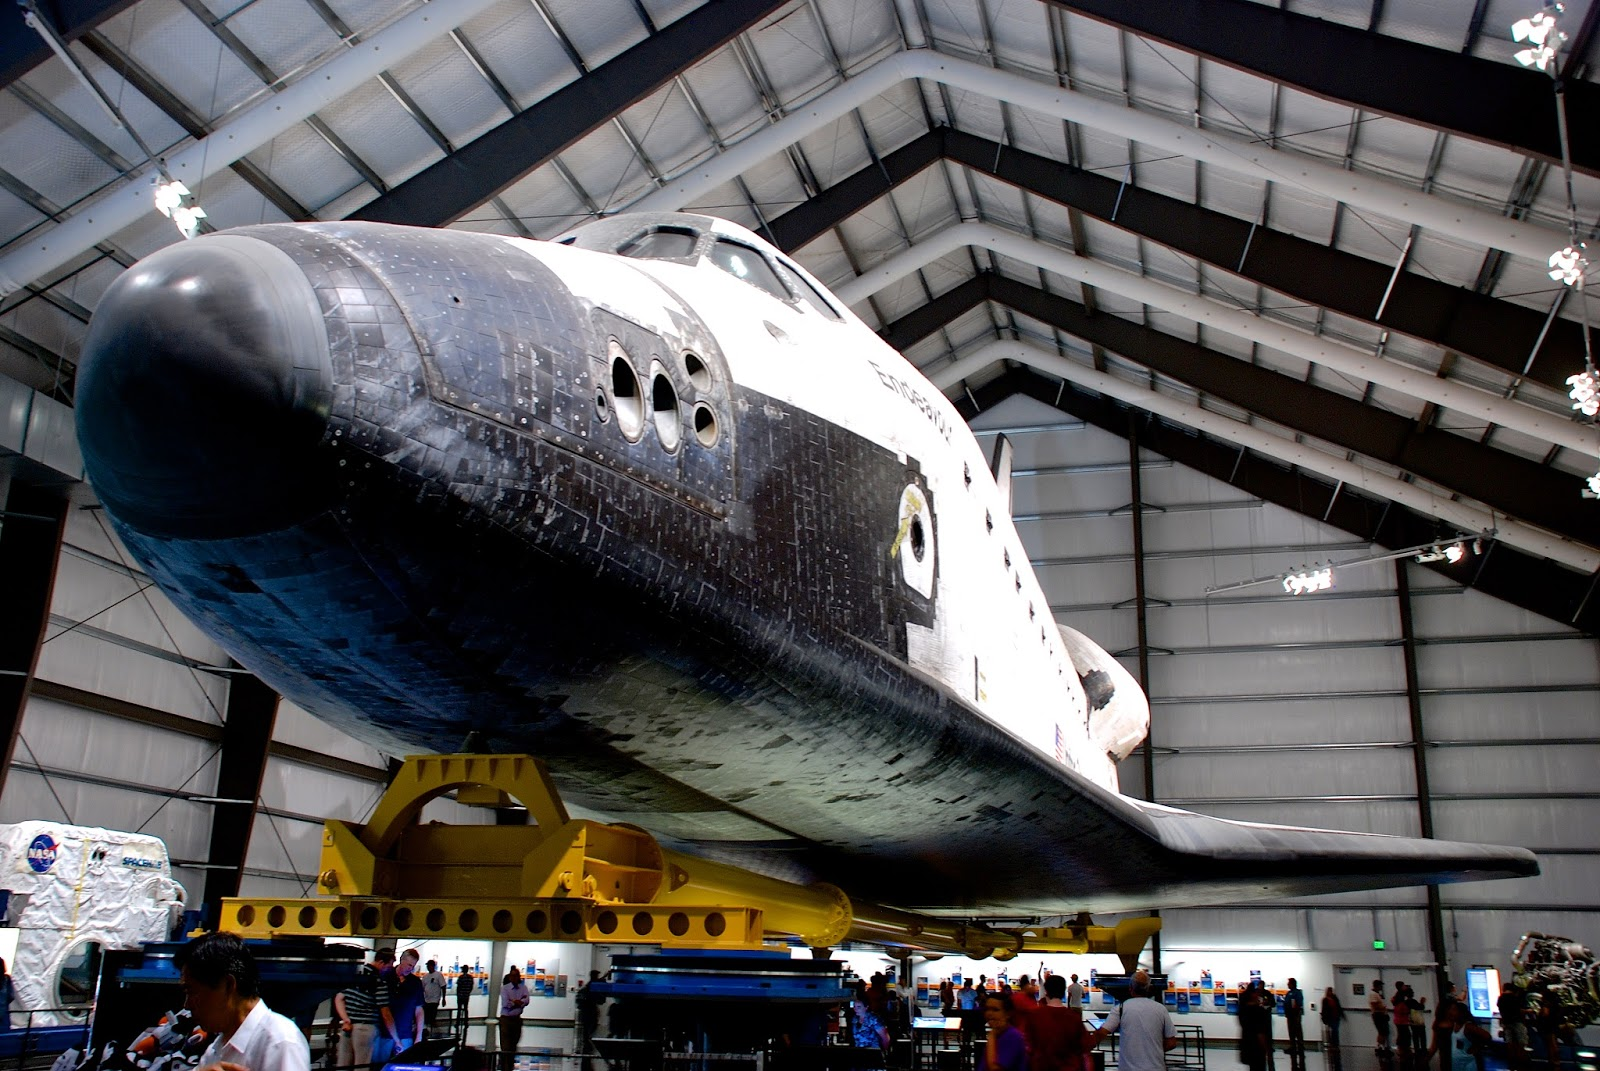 Aviationshotz: Space Shuttle Endeavour - OV-105